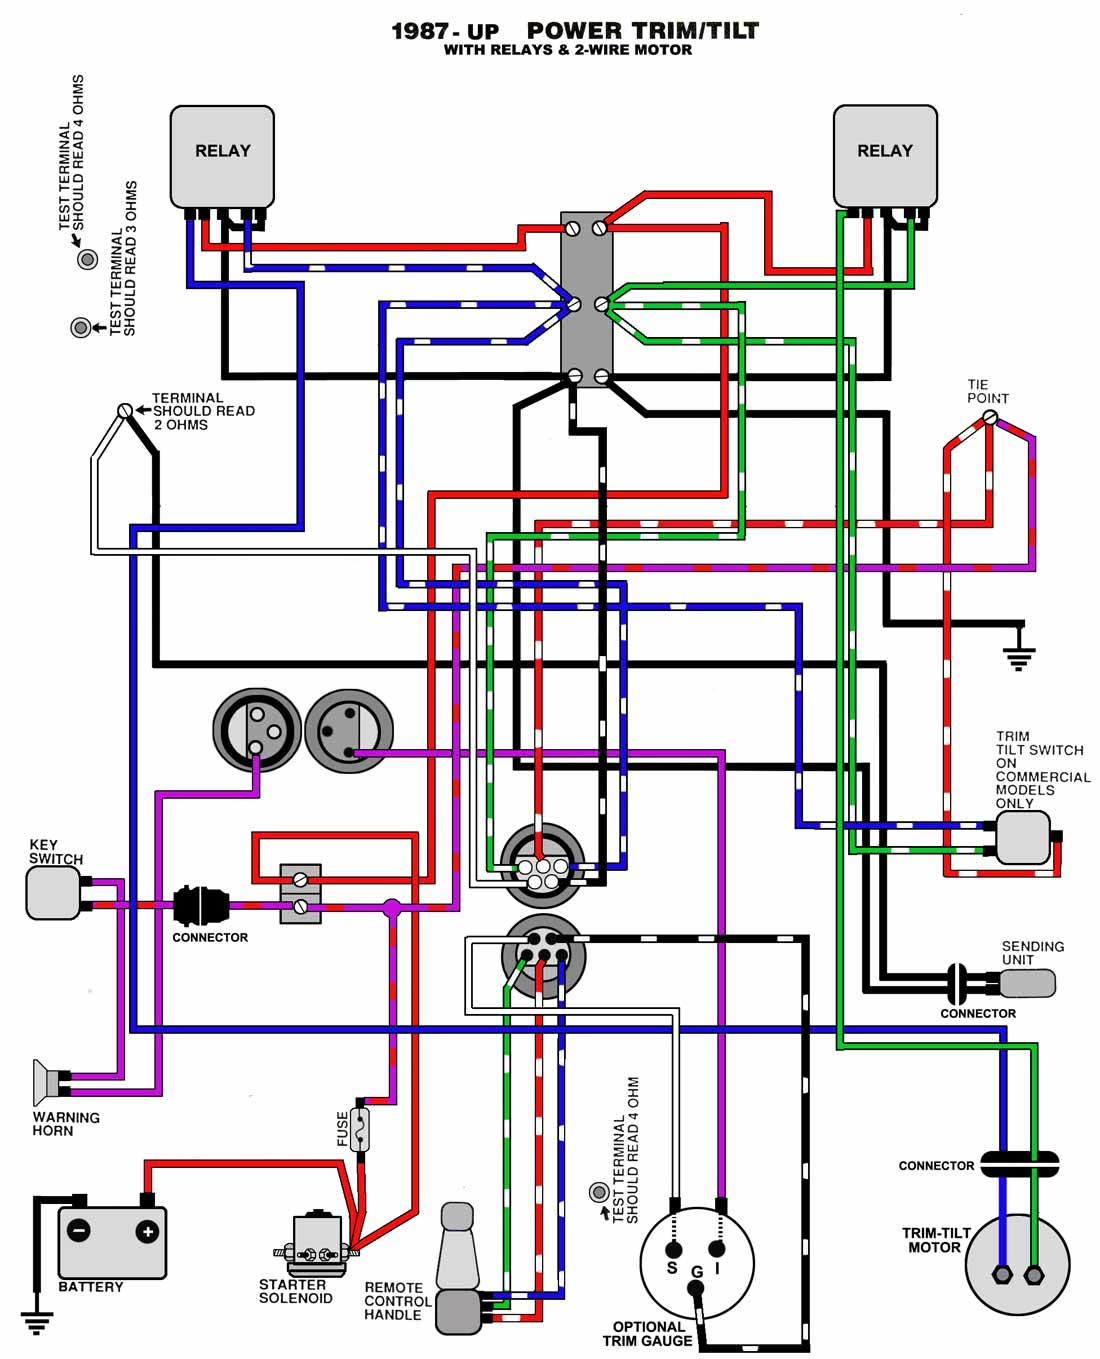 TnT_87_UP johnson outboard wiring diagram 25 hp johnson wiring diagram mercruiser trim wiring harness at readyjetset.co